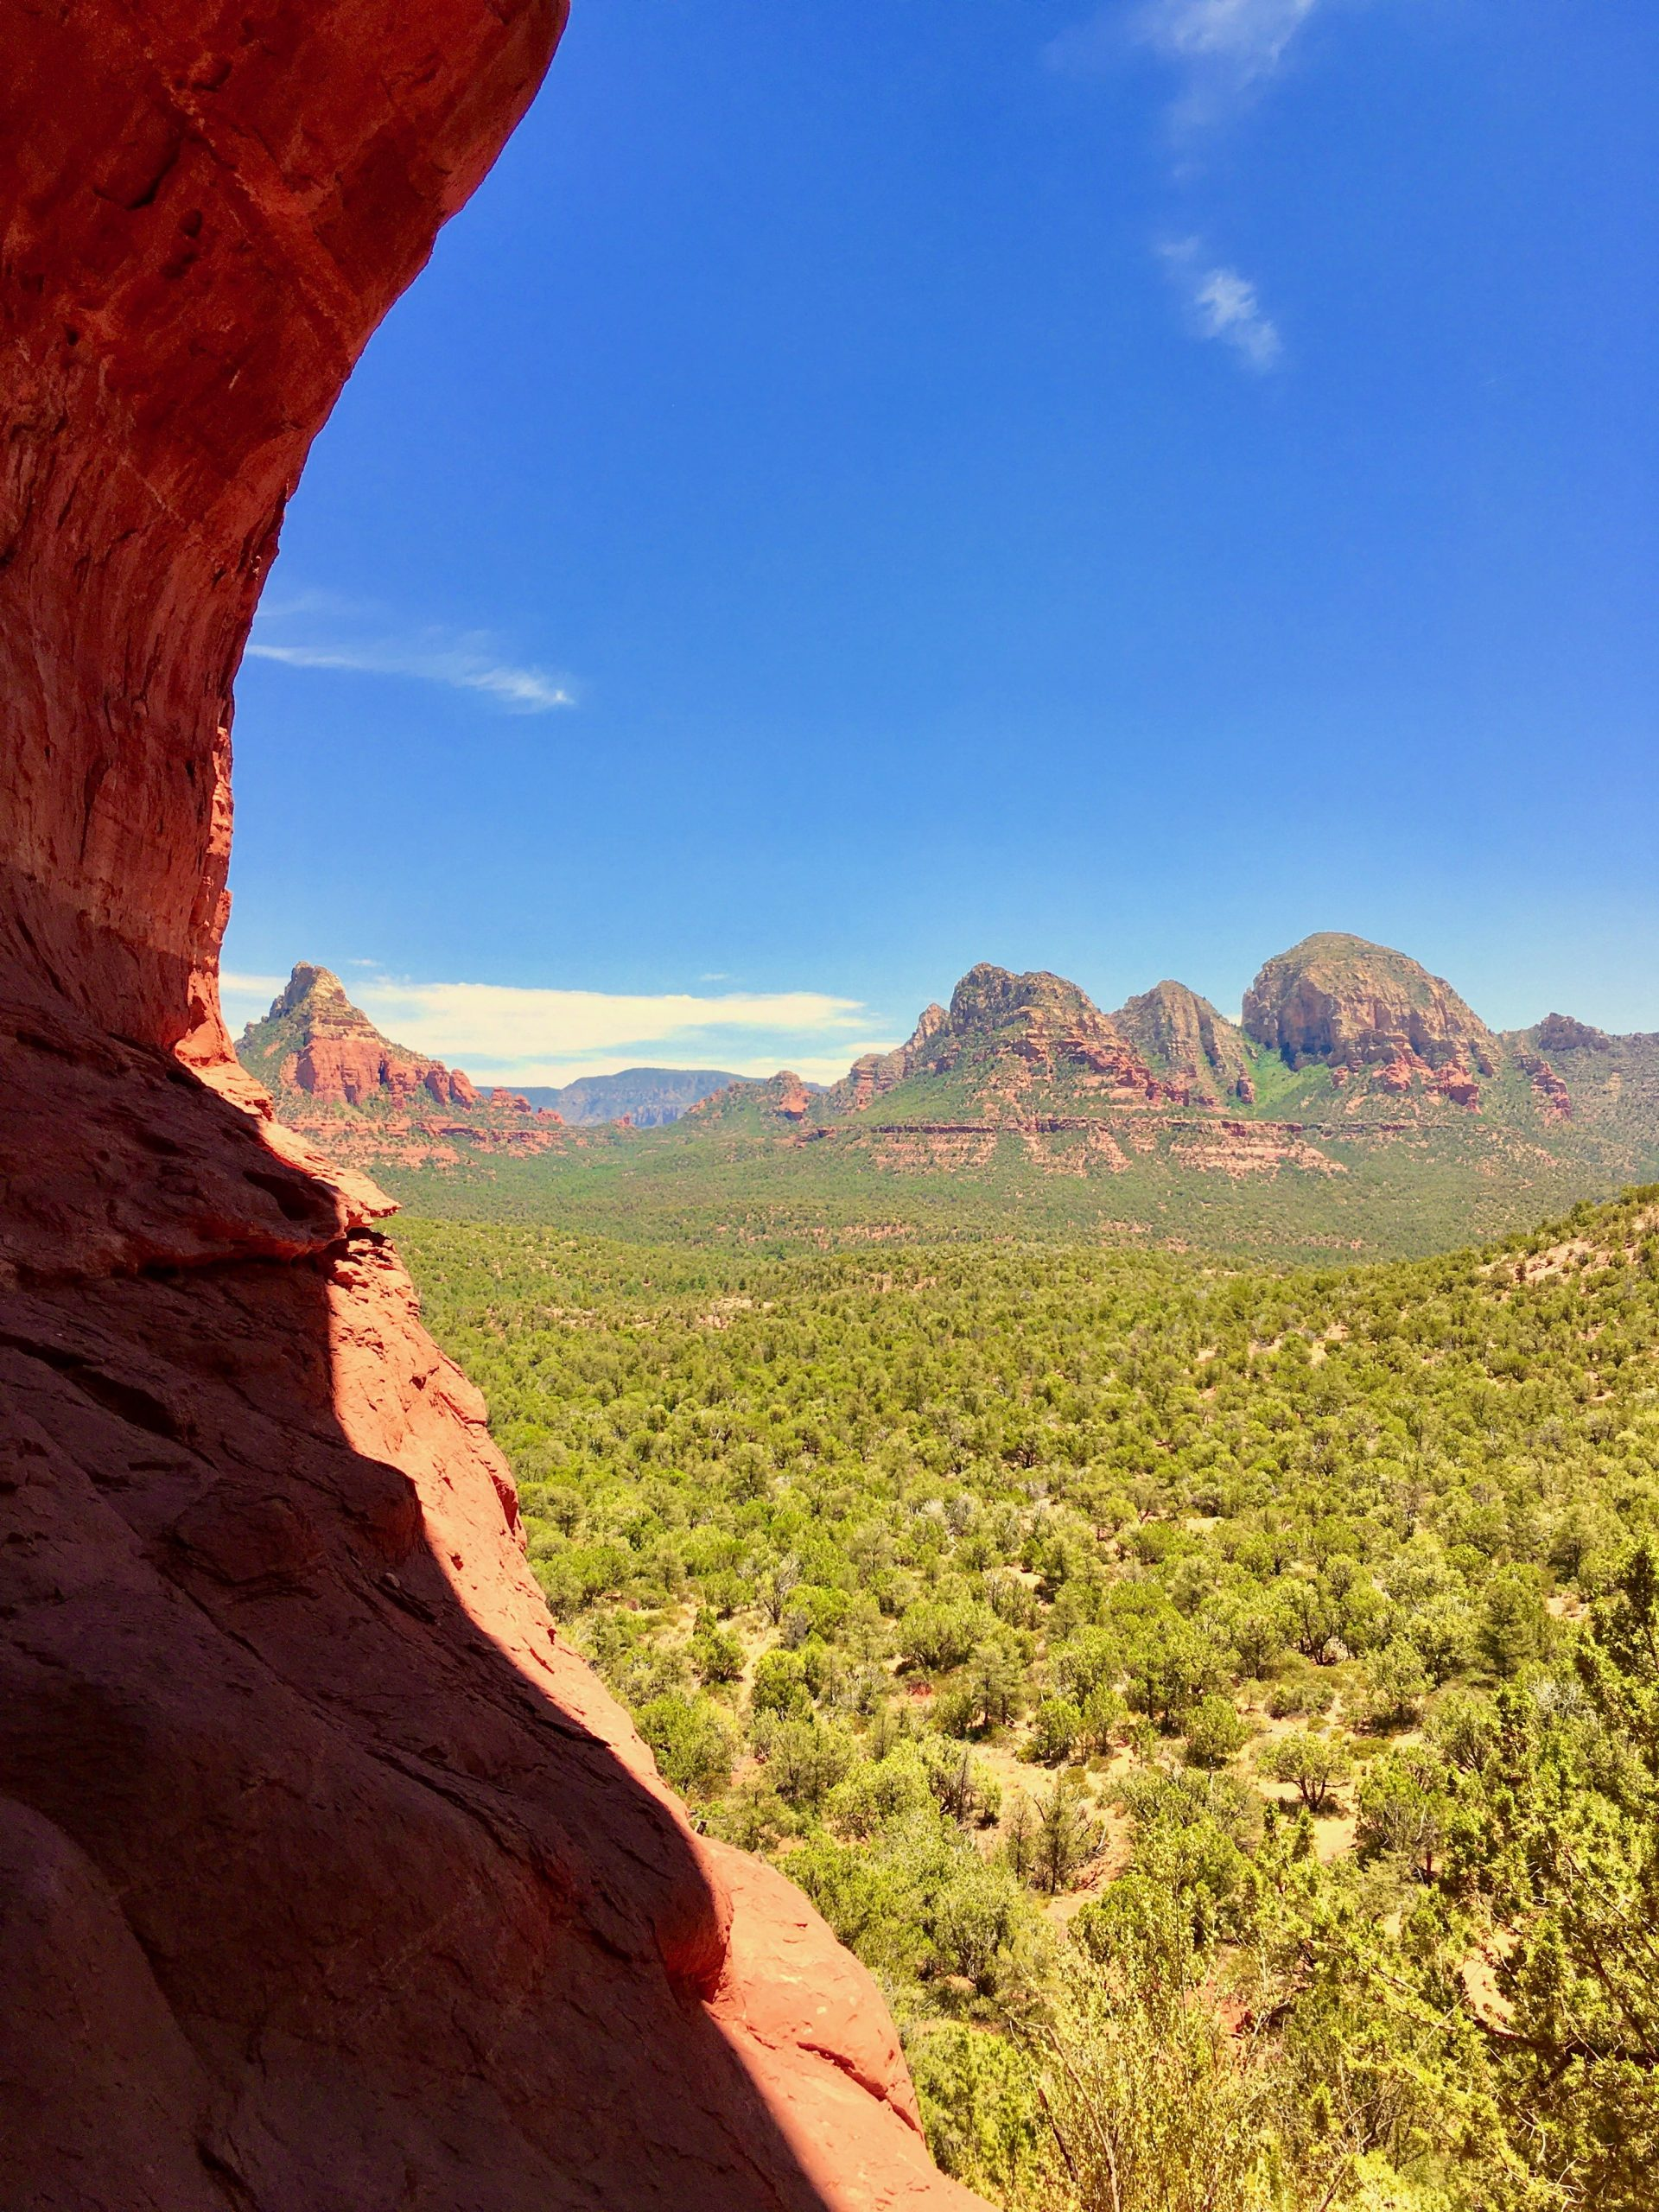 The Birthing Cave View of Sedona